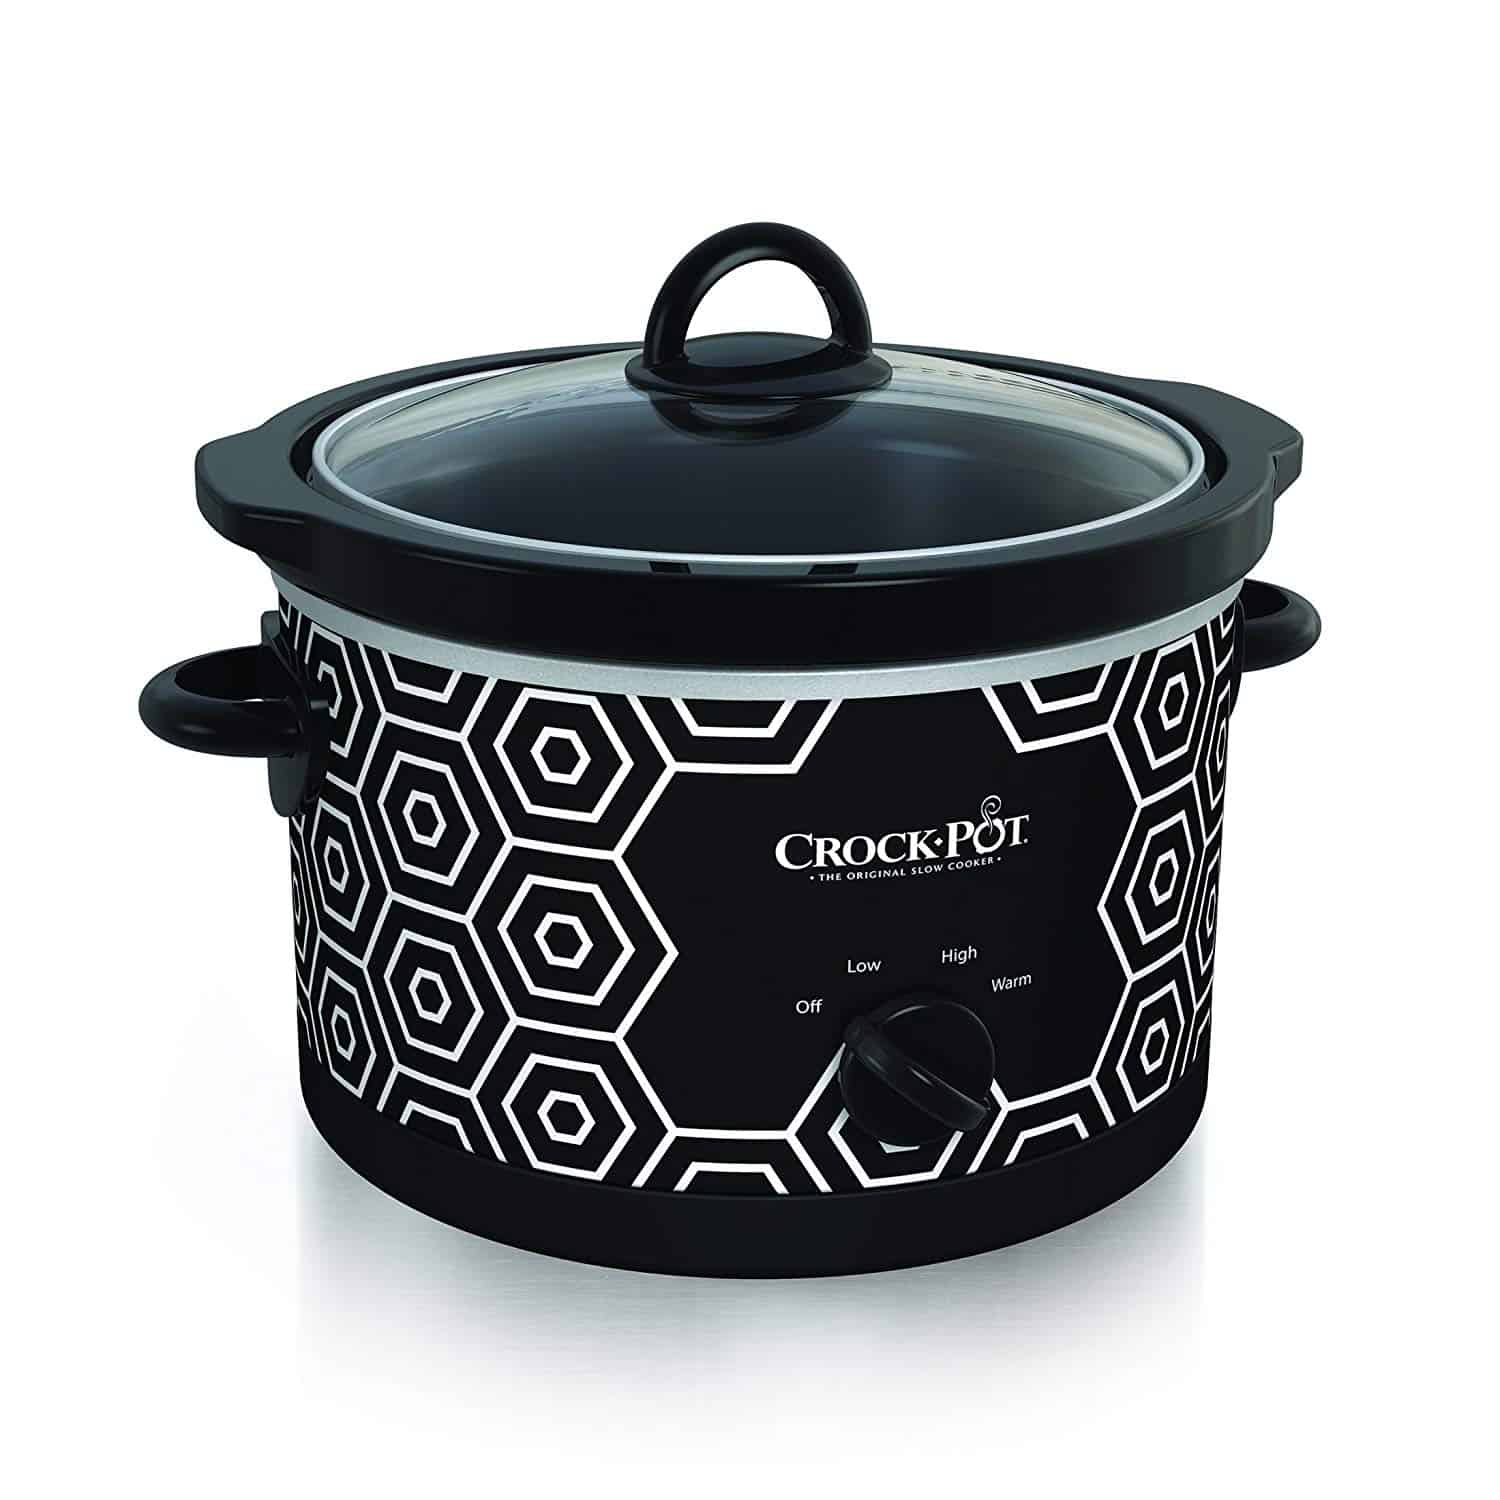 Crock-Pot Round with Cool Geometrical Pattern Slow Cooker